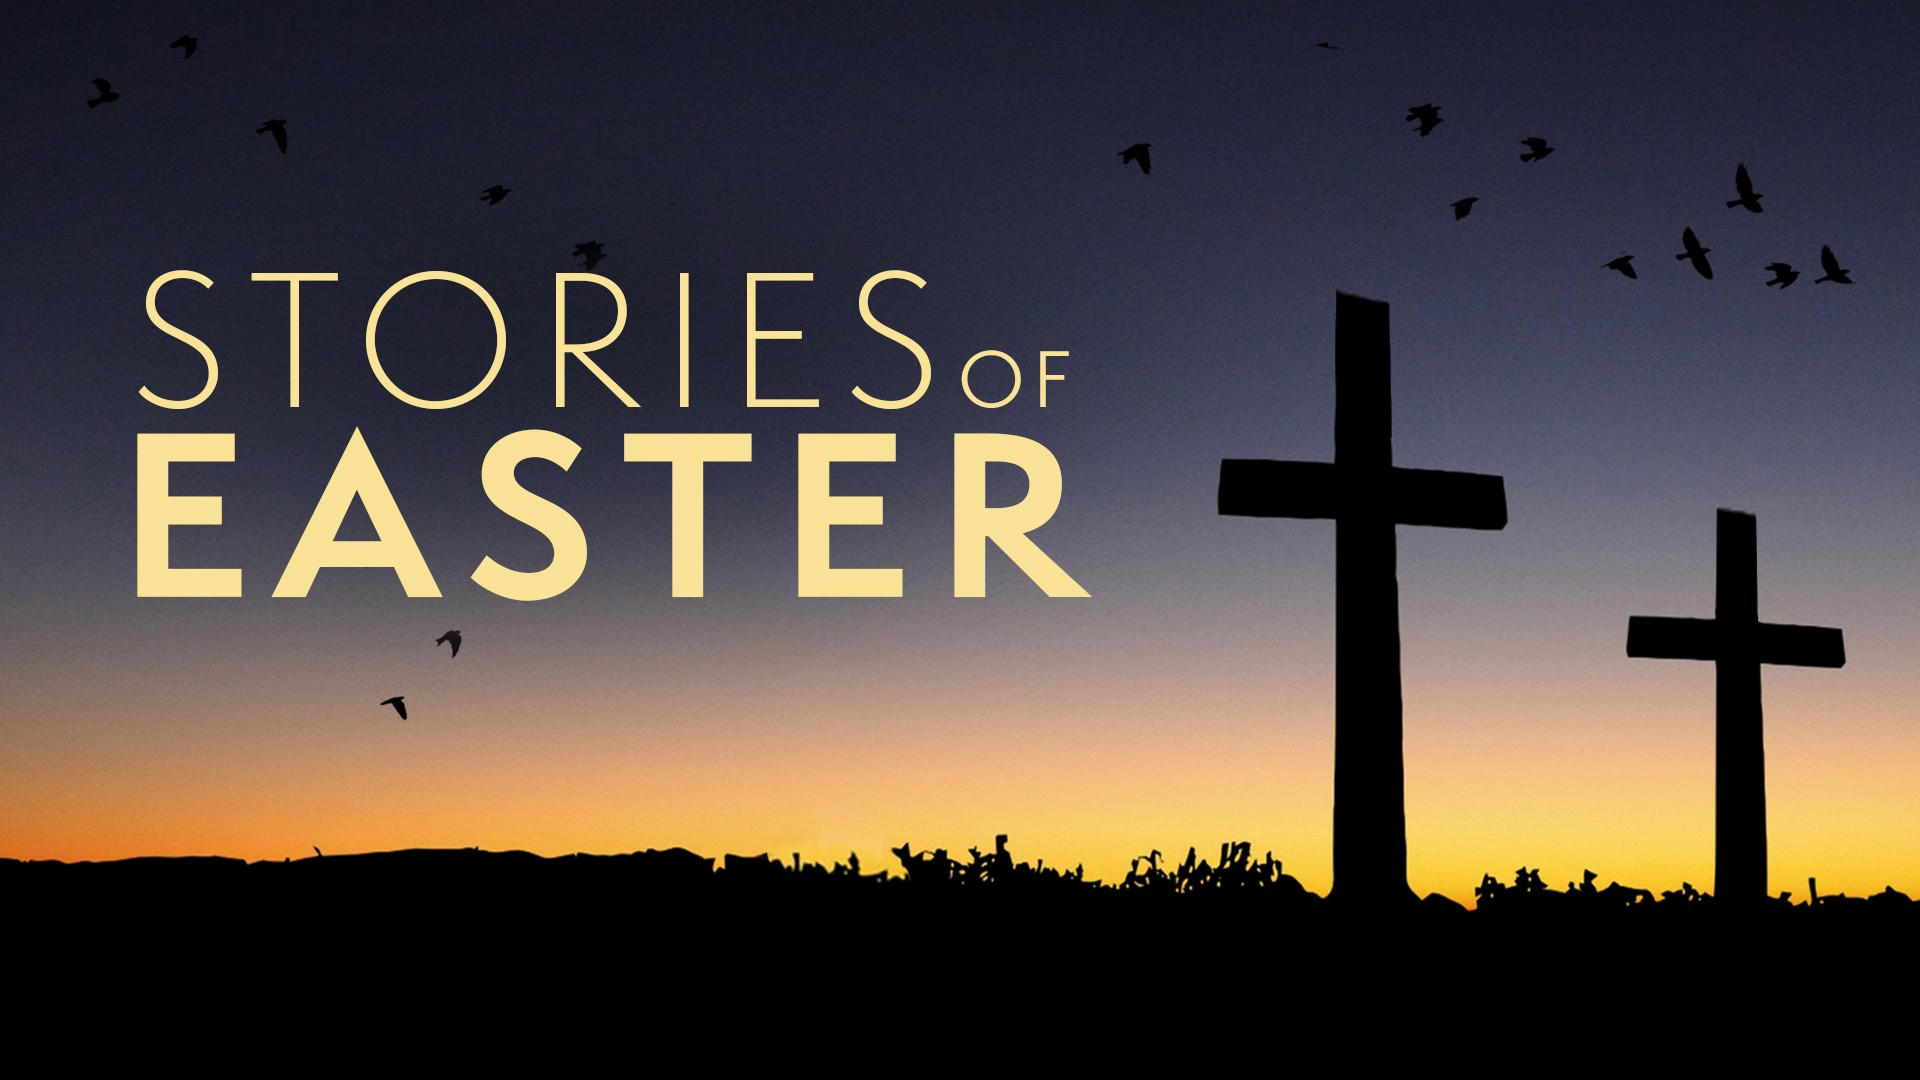 Stories of Easter